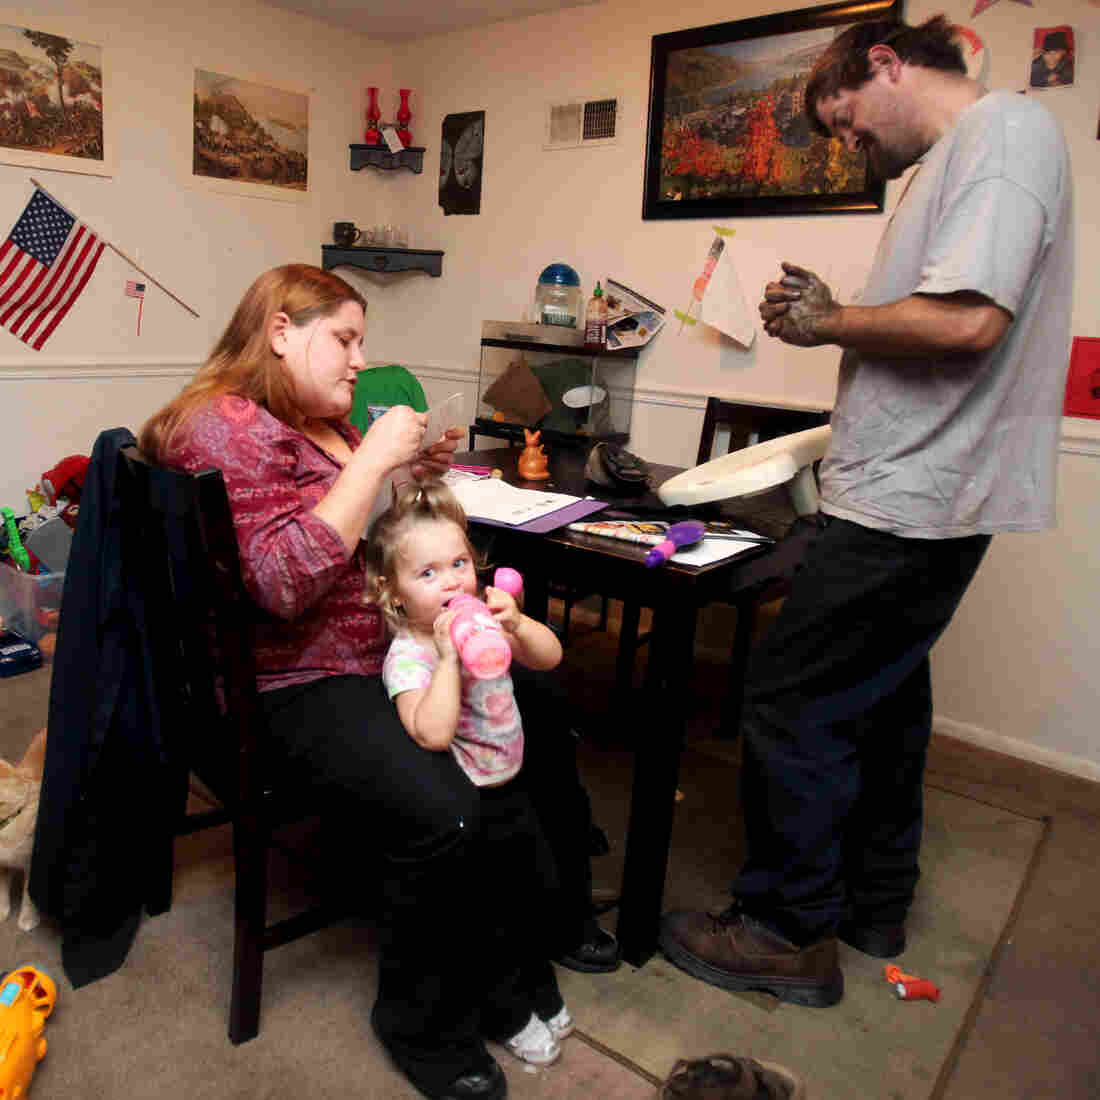 Phillip Underwood and Michelle Sheridan and their children, Logan and Lilliana, gather in their living room in Frederick, Md., after a long day of work and school. The couple had delayed marriage, in part for financial reasons.